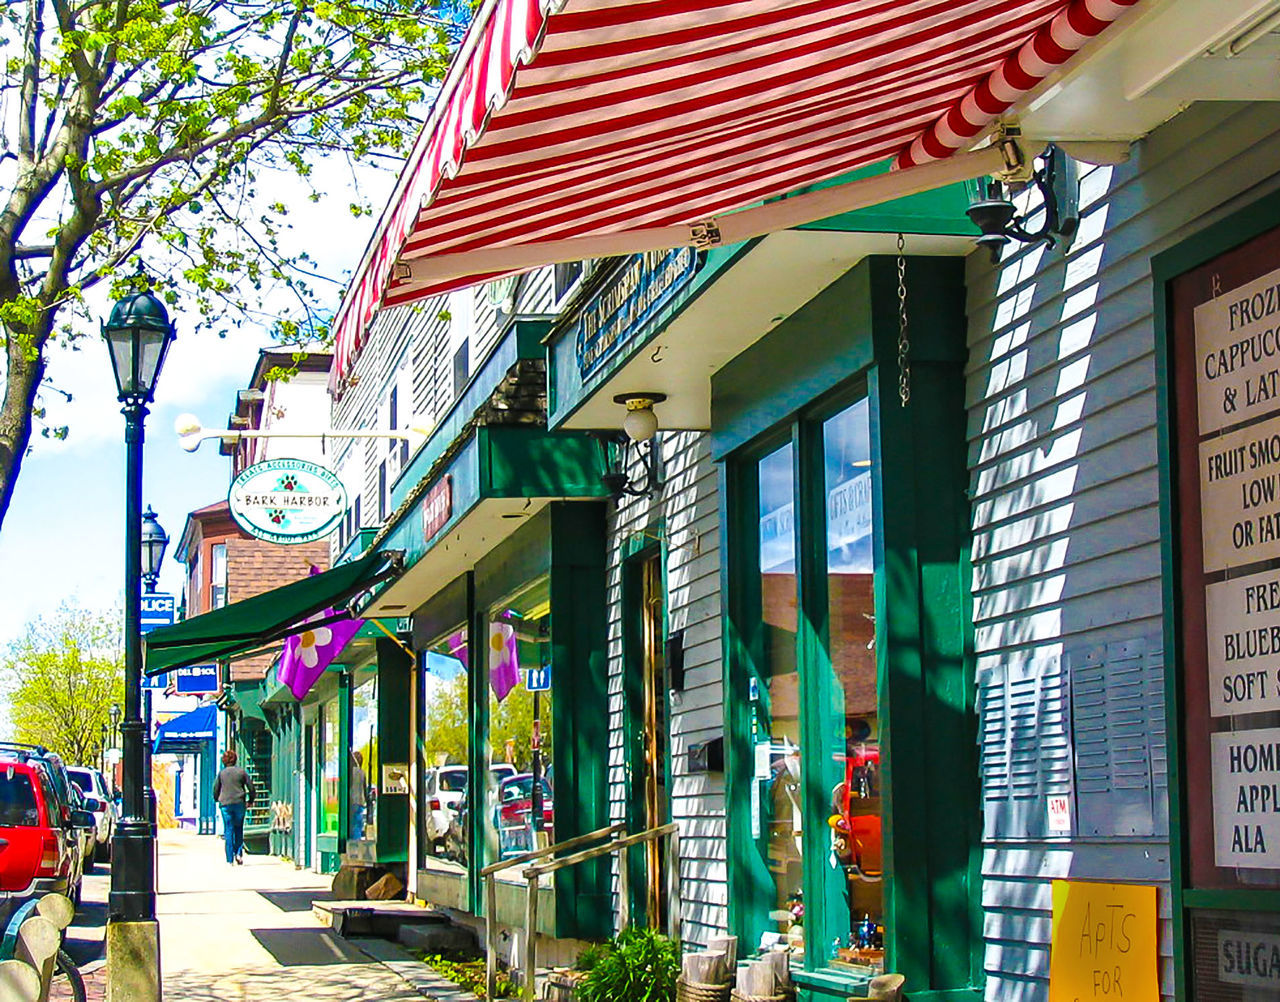 Architecture Bar Harbor, Building Exterior Built Structure Charming Shanghai Charming Shopes City Day Main No People Outdoors Patriotism Residential Building Small Town Sprigtimeswaggar Travel Destinations